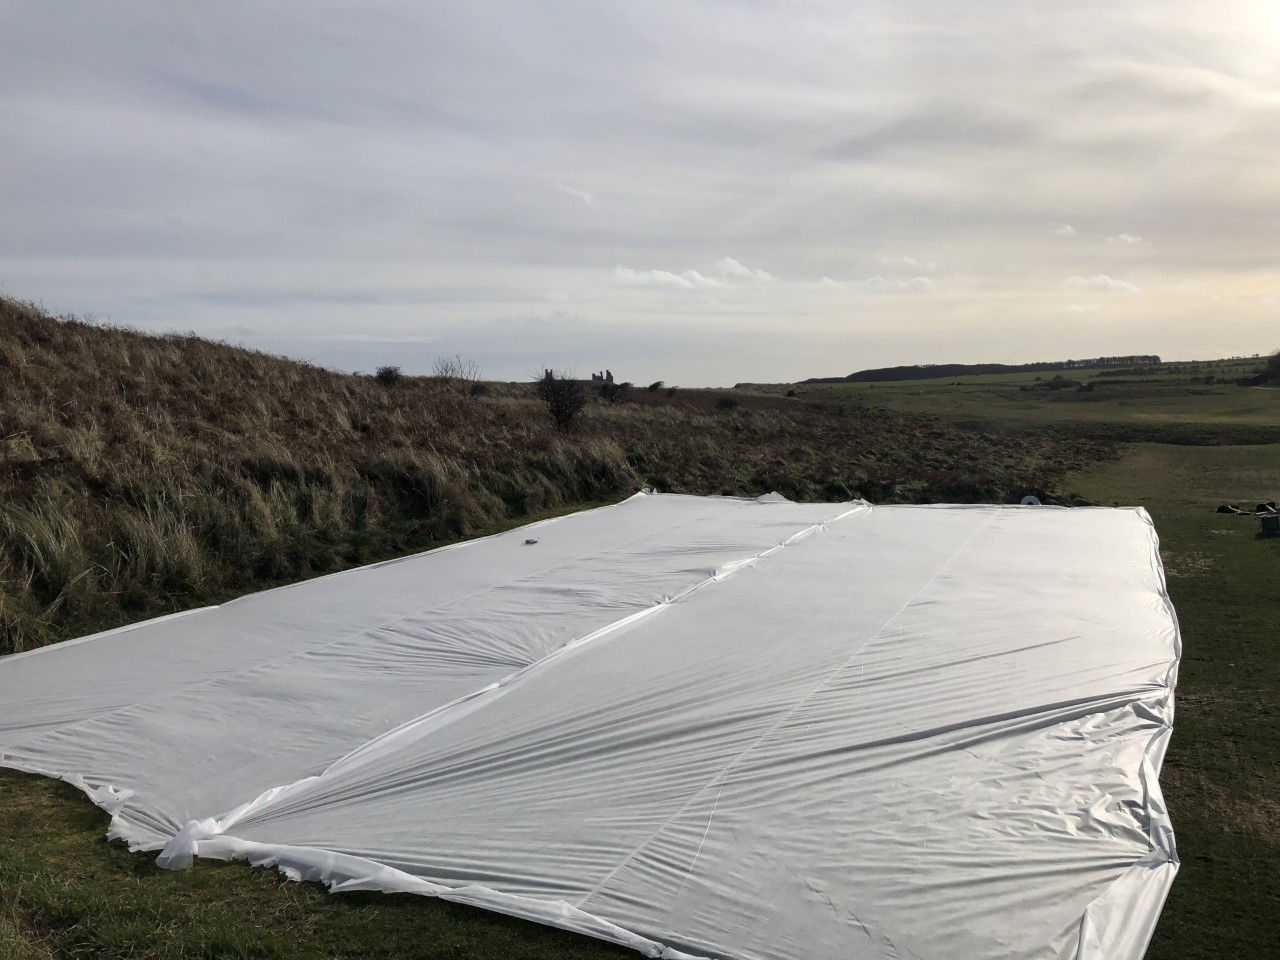 Grow mats over the 8th Tee - your going to see a few of these out on the golf course to help try and promote some new grow on heavily worn areas.